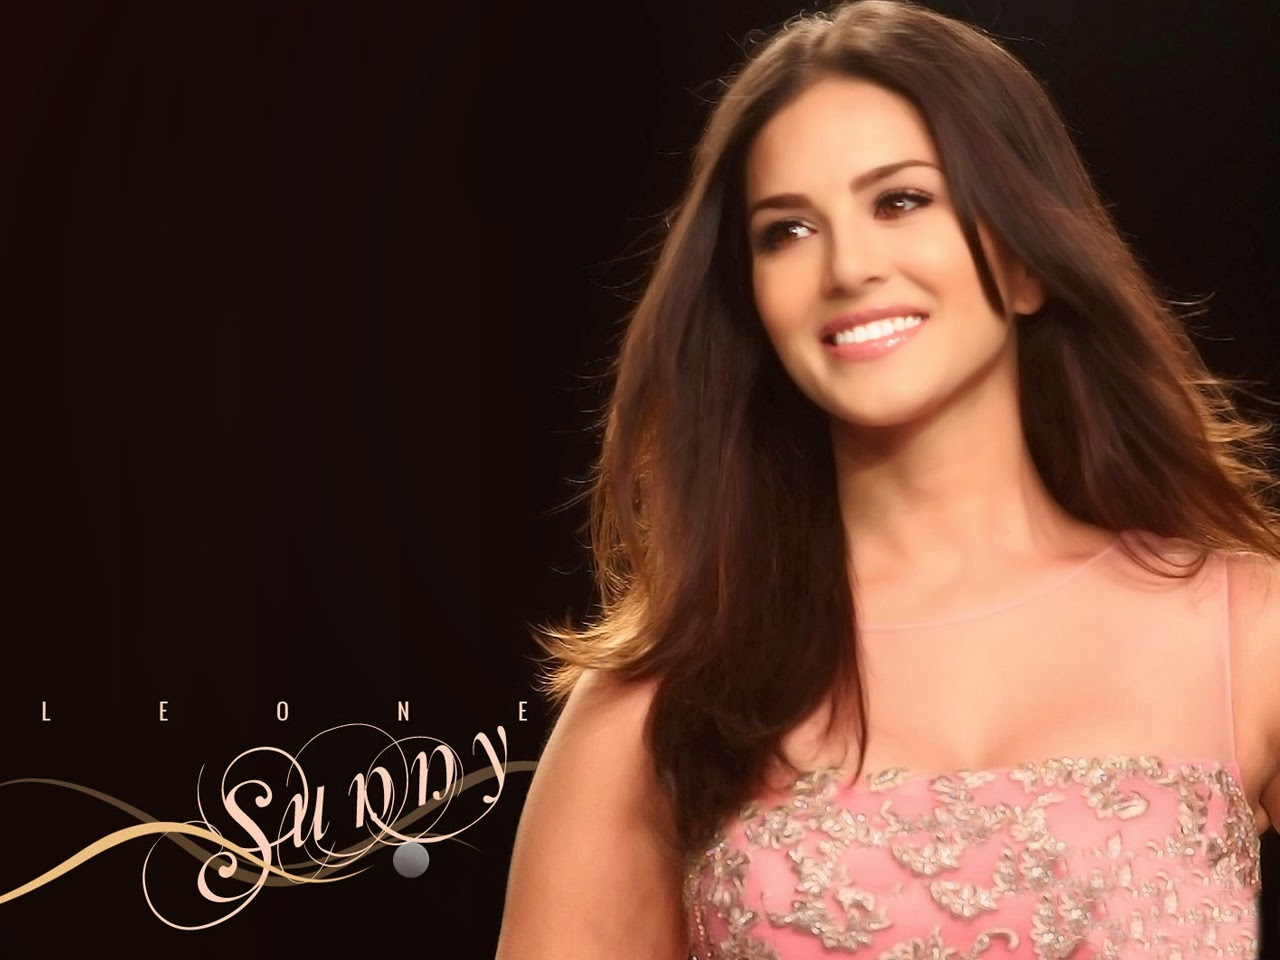 global pictures gallery sunny leone full hd wallpapers